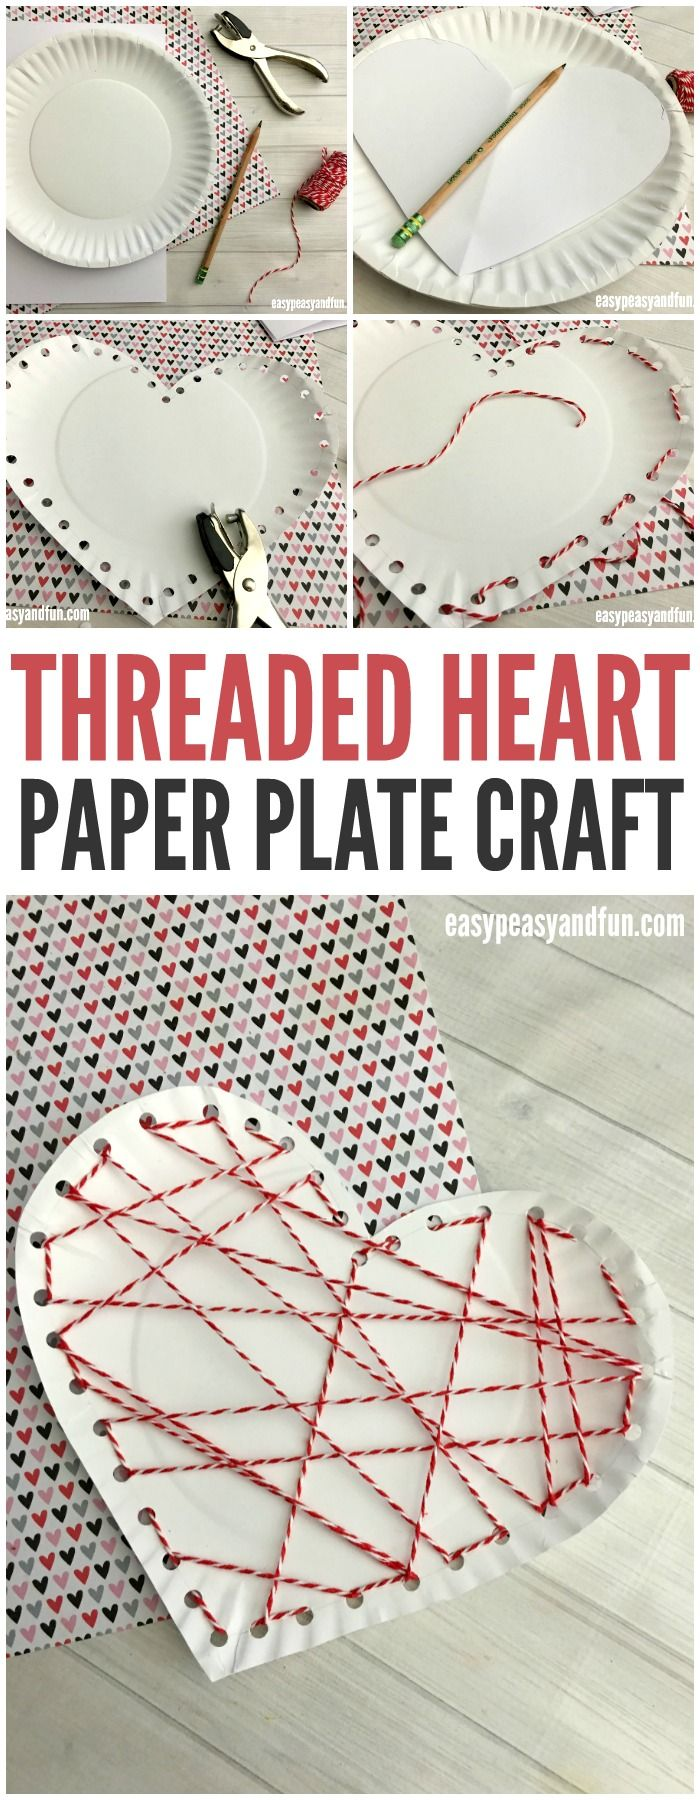 Heart Paper Plate Craft for Little Ones